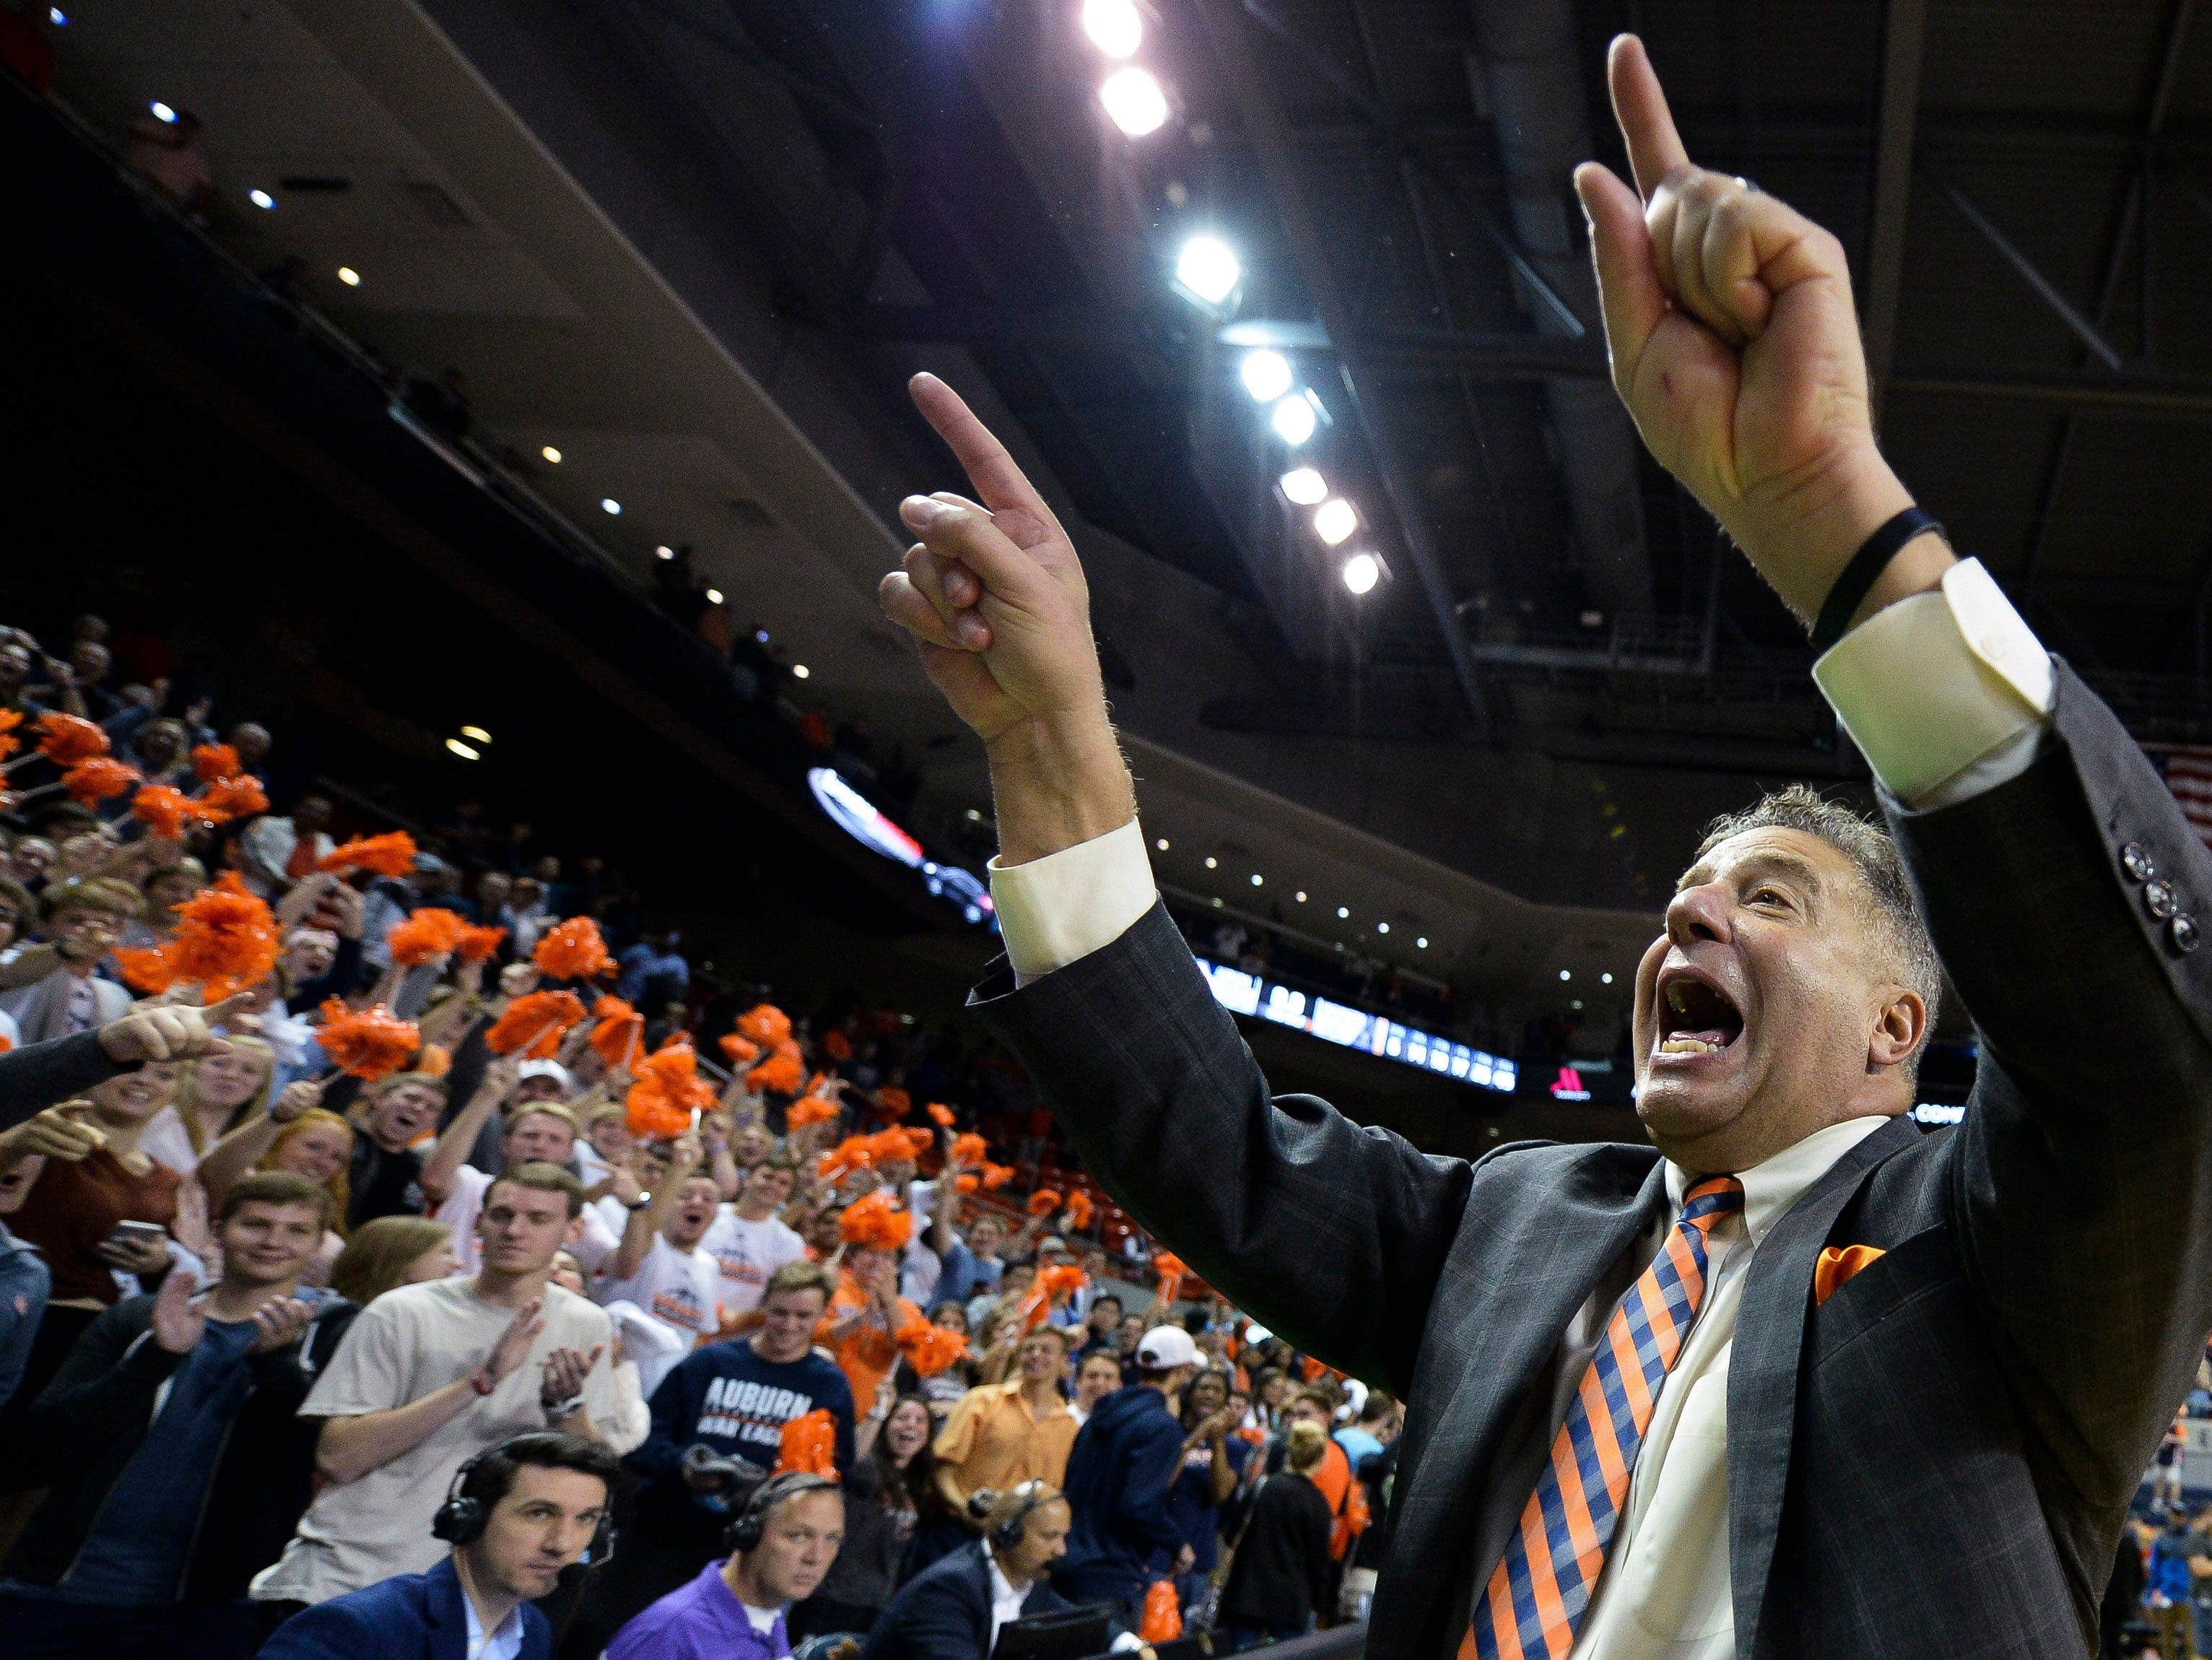 Nov 9, 2018; Auburn, AL, USA; Auburn Tigers head coach Bruce Pearl celebrates with fans in the stands after defeating the Washington Huskies at Auburn Arena. Mandatory Credit: Julie Bennett-USA TODAY Sports